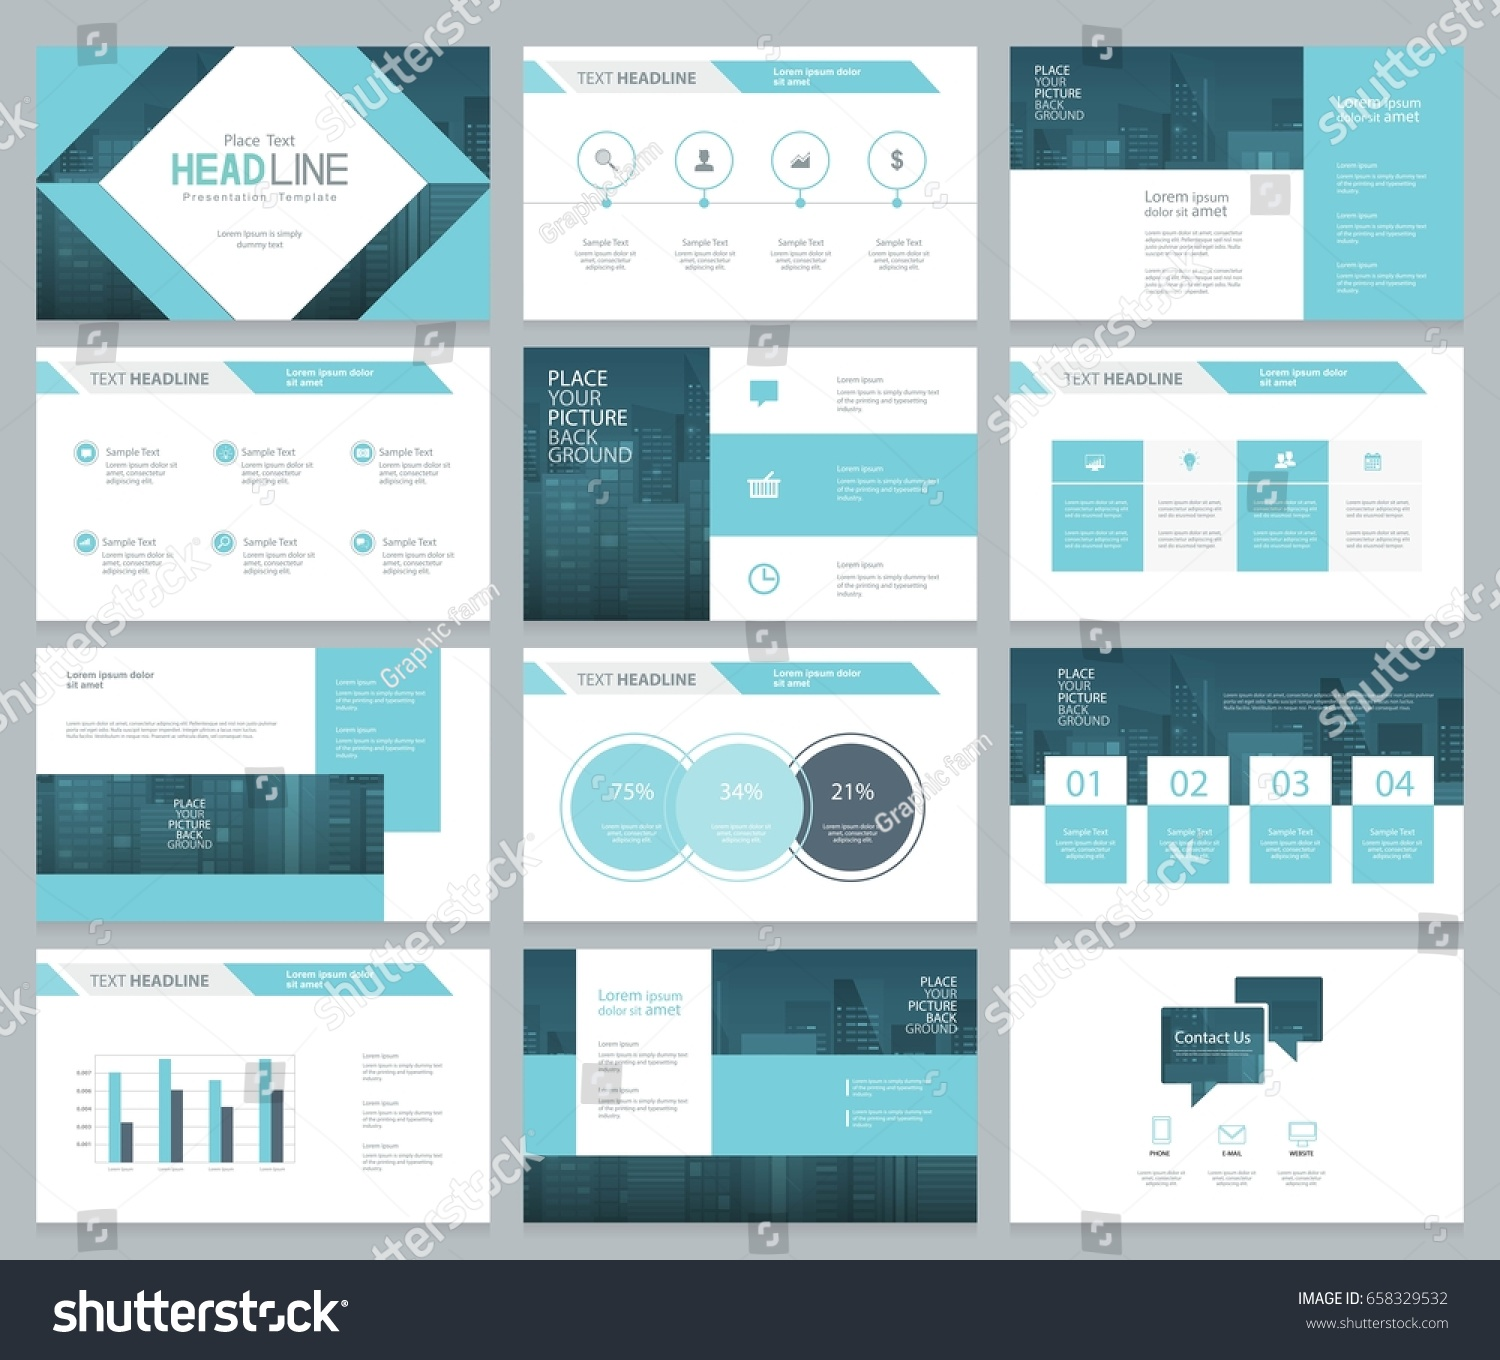 how to change page layout in powerpoint